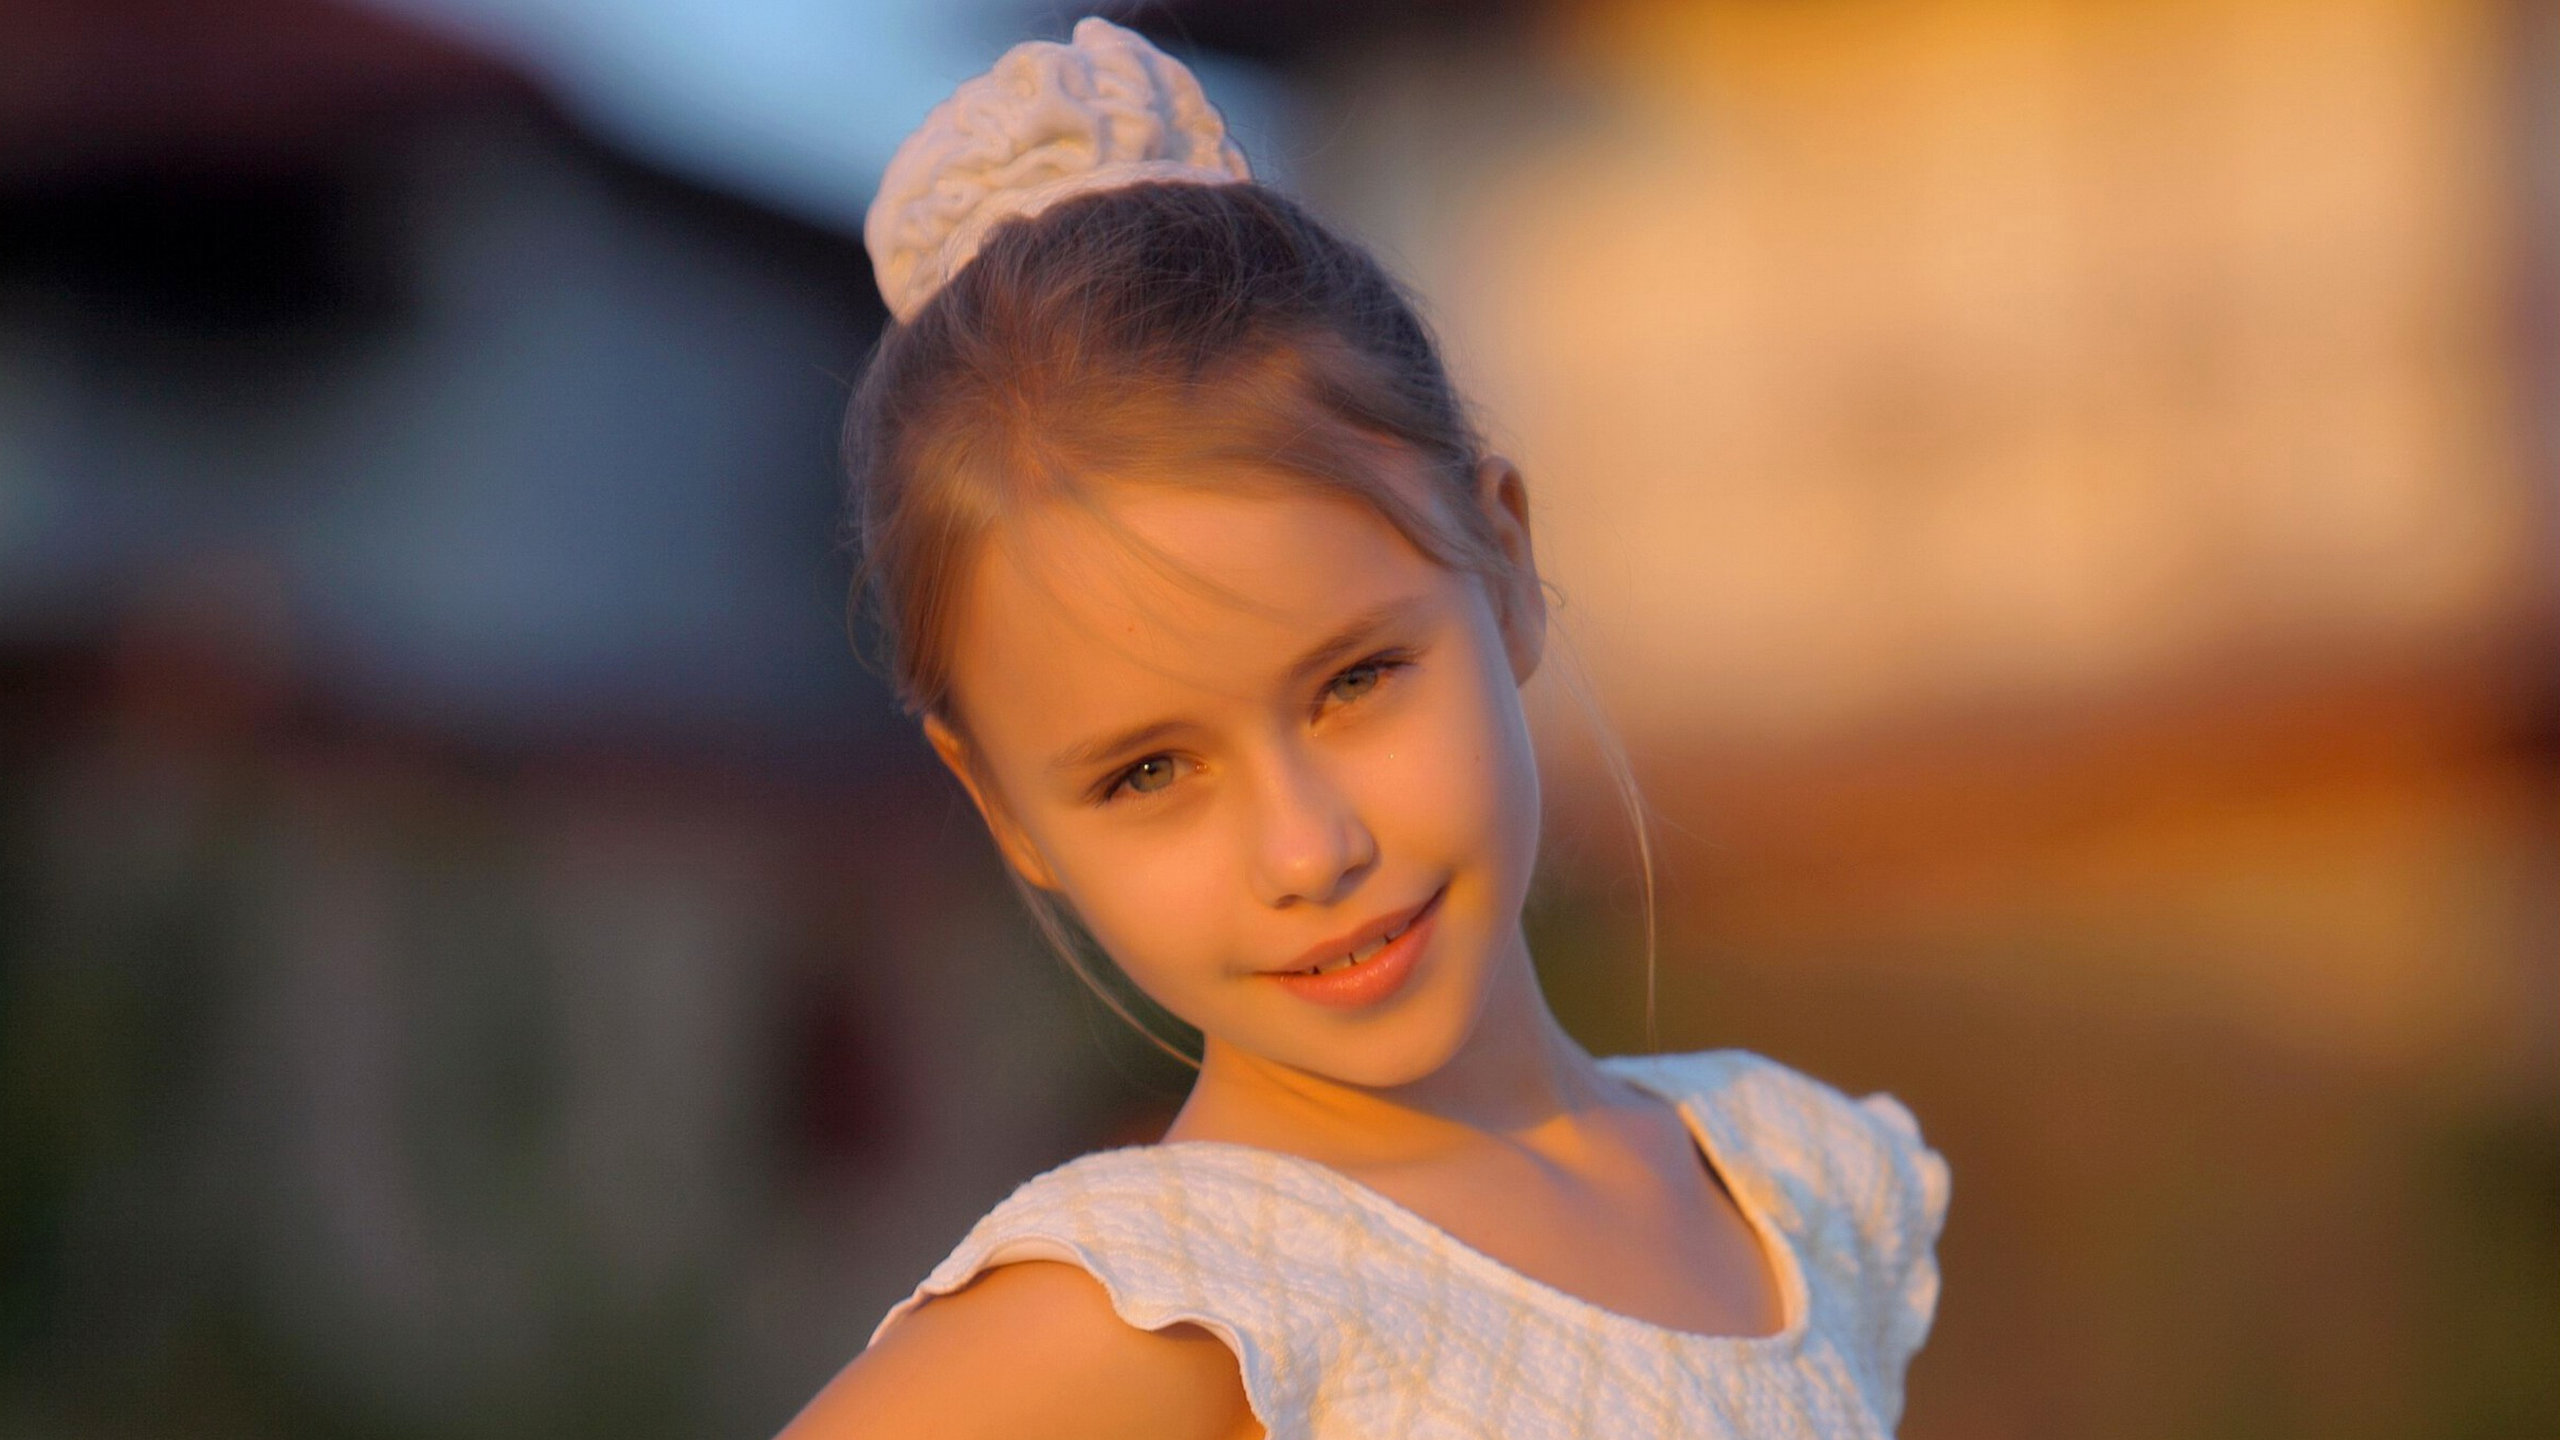 Candy Doll Valensiya B Photos: 2560x1440 HannaF Girl Portrait At Sunset Desktop PC And